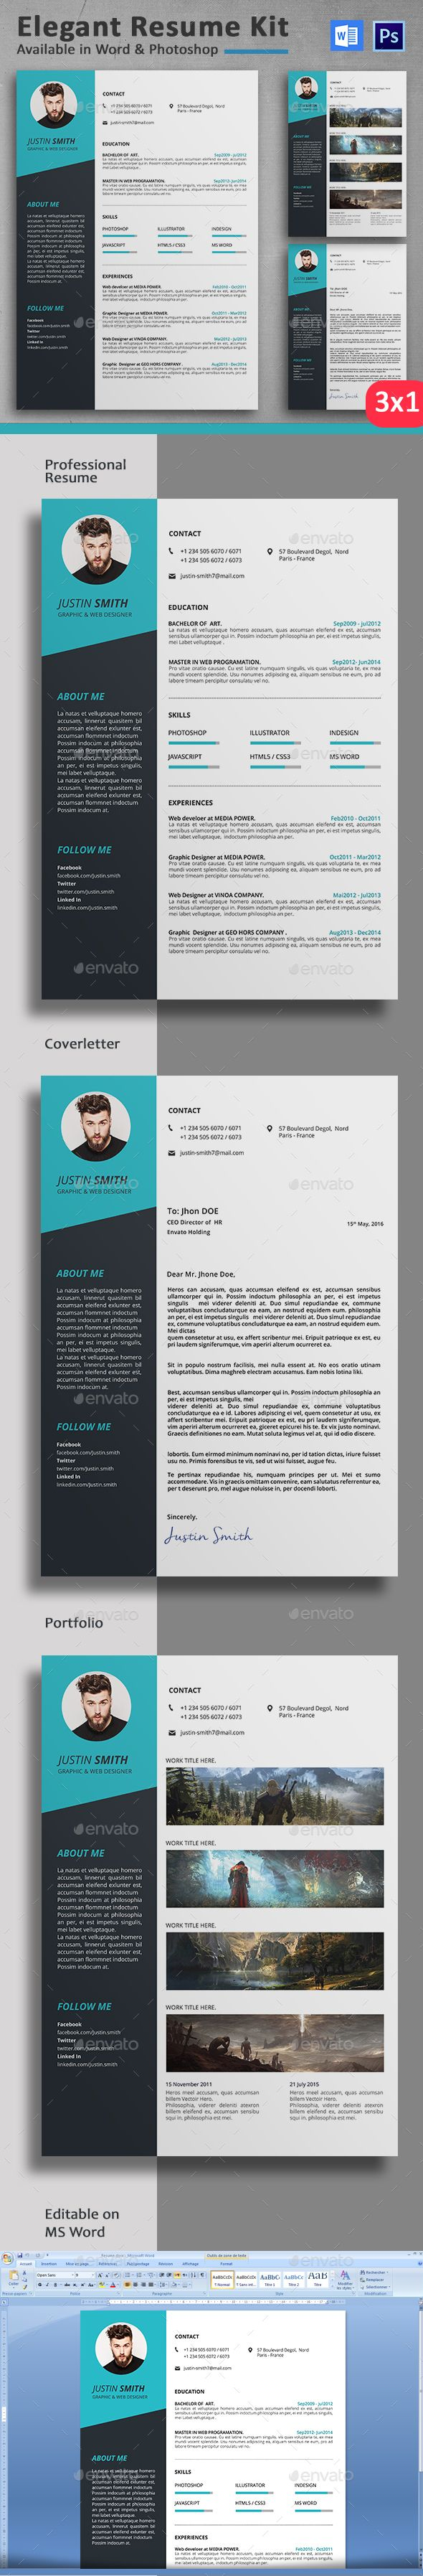 best ideas about professional resume template resume